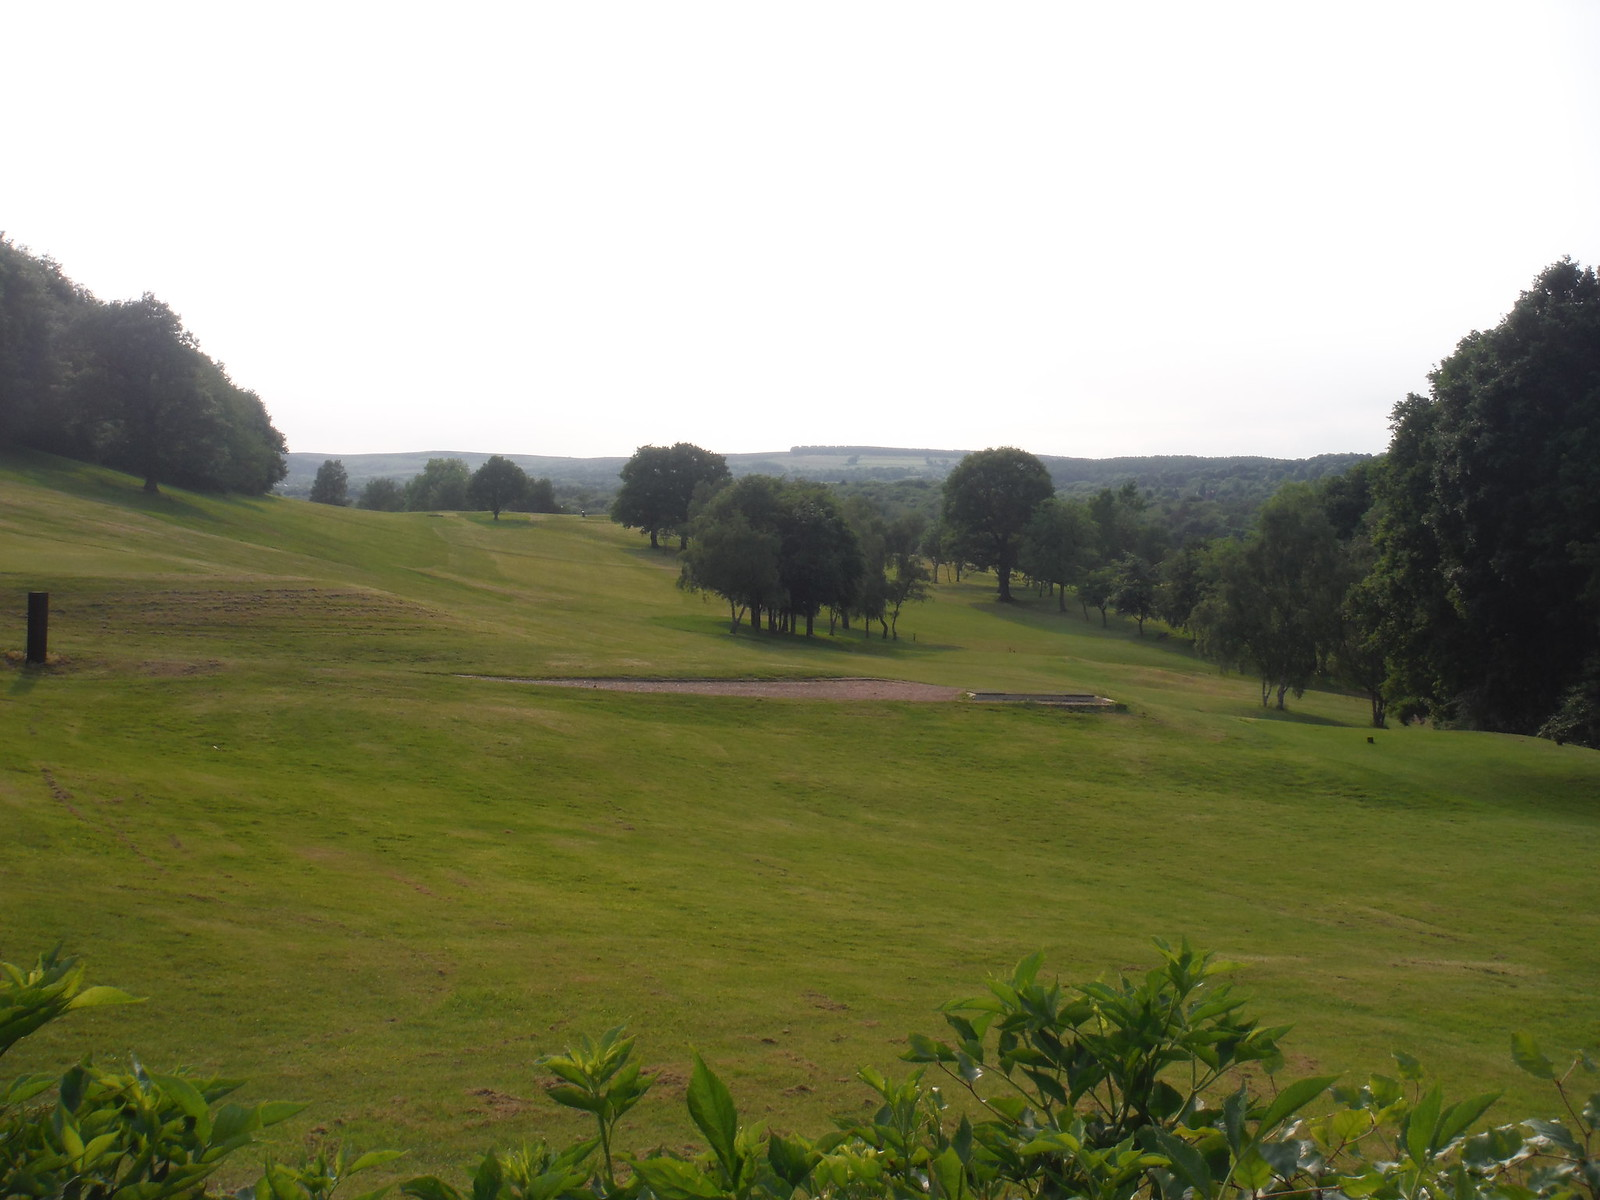 Golf Course near Beauchief Abbey SWC Walk 267 - Sheffield Circular (via Porter, Limb, Sheaf and Gleadless Valleys)